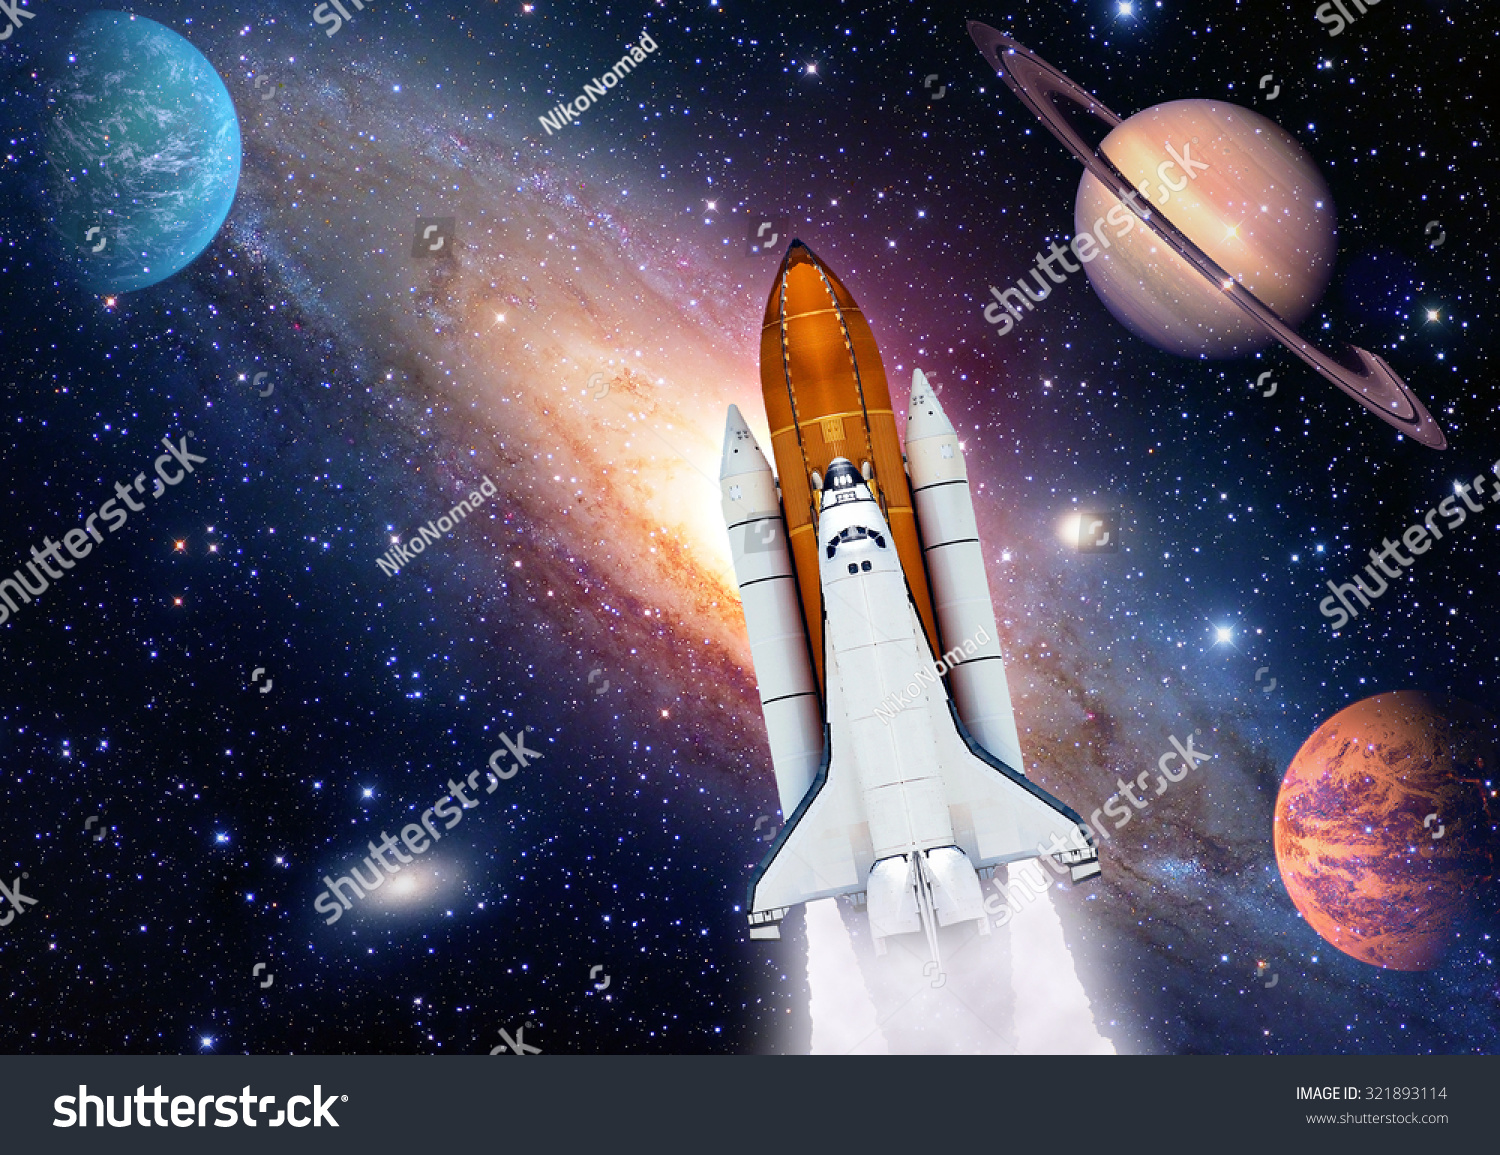 Outer space travel shuttle rocket launch stock photo for Outer space elements